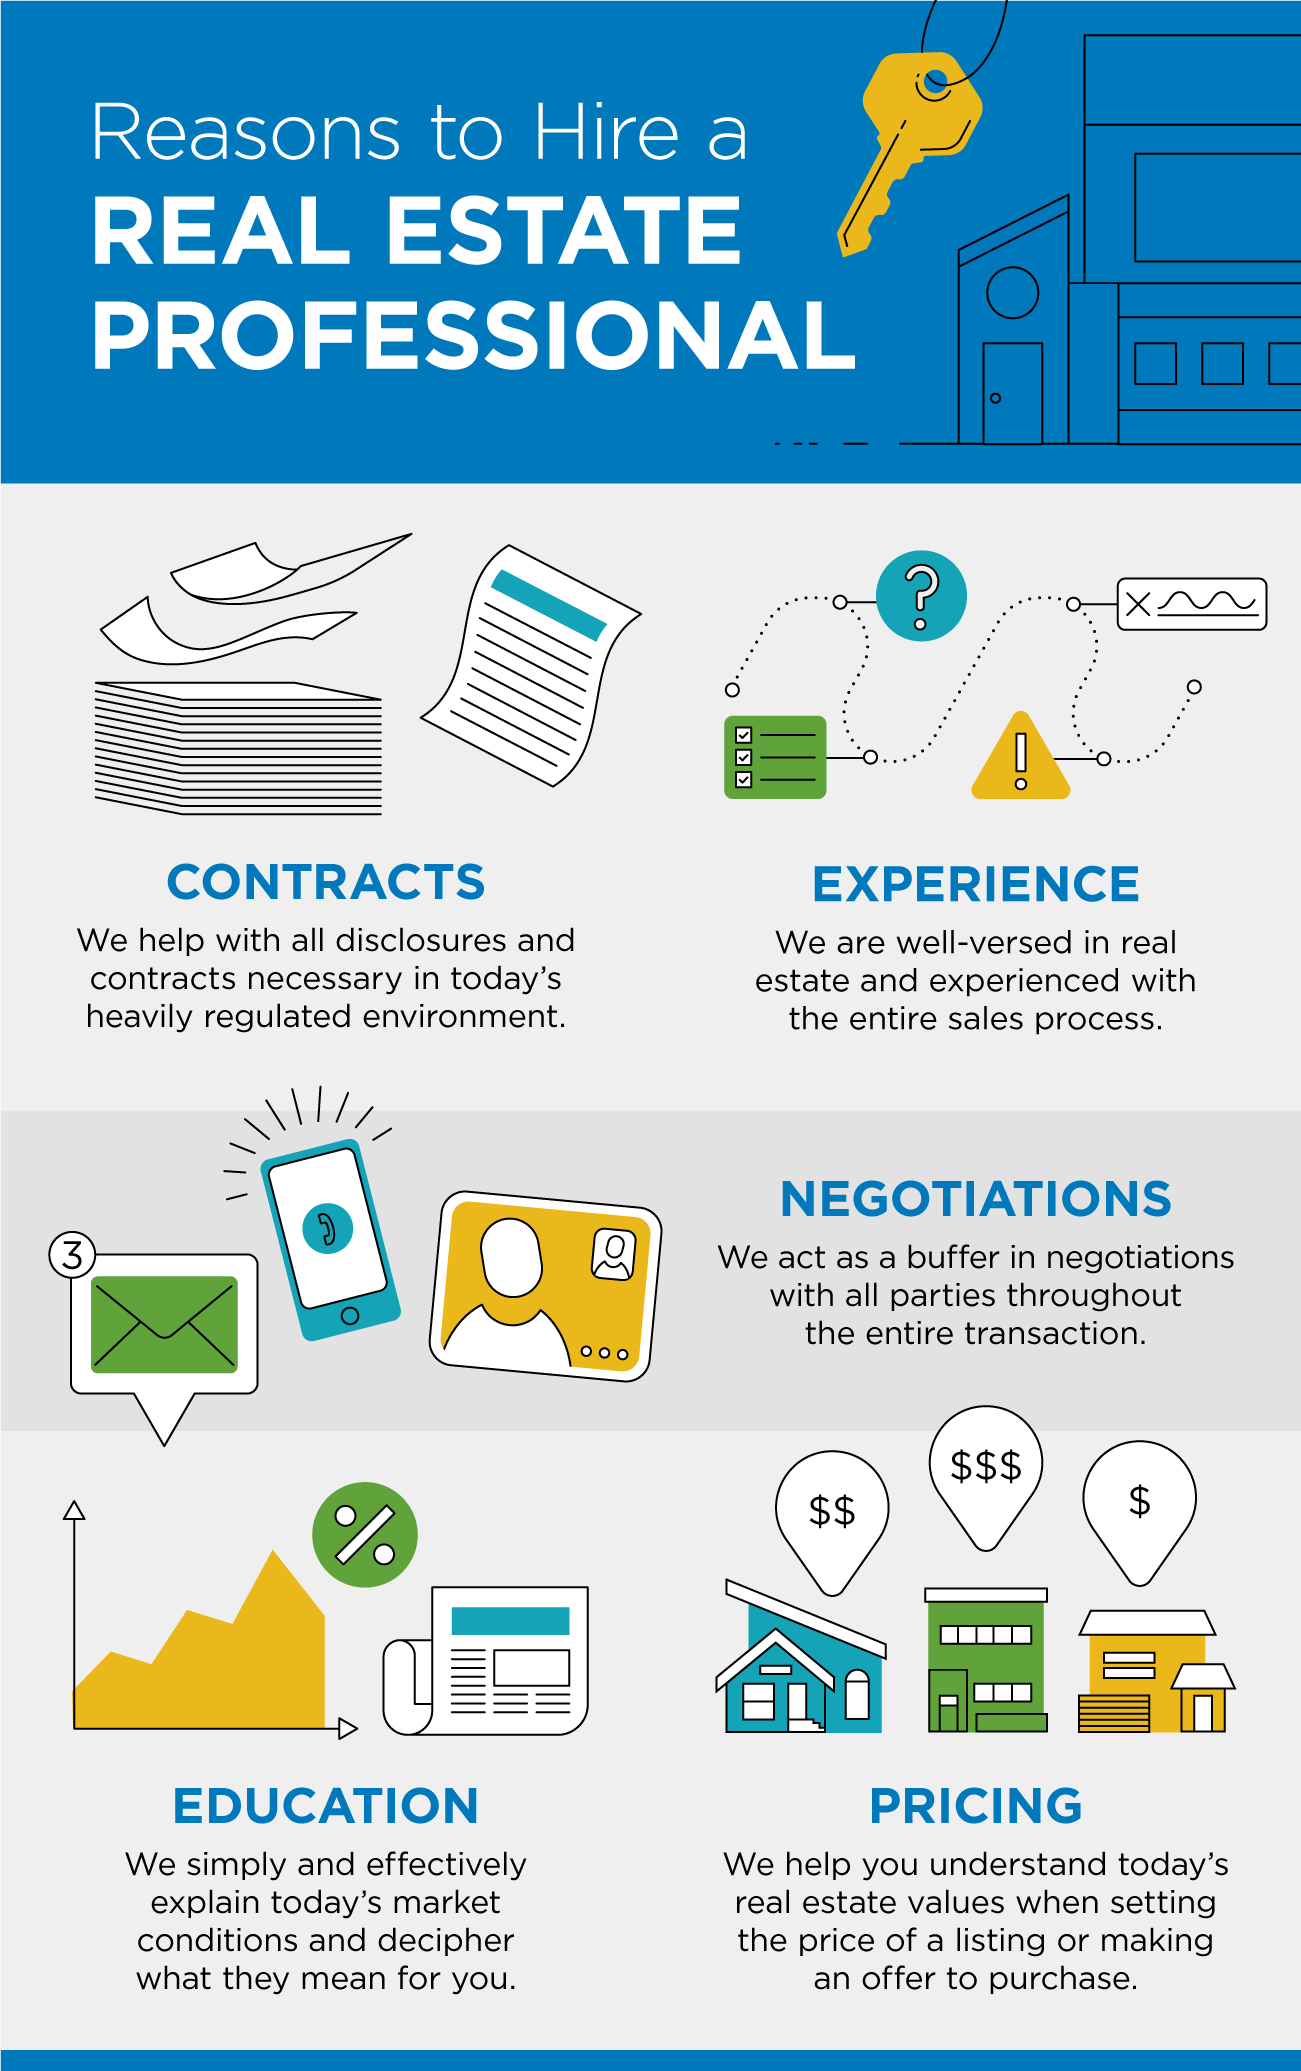 Reasons to Hire a Real Estate Professional [INFOGRAPHIC] | Bridge Builders